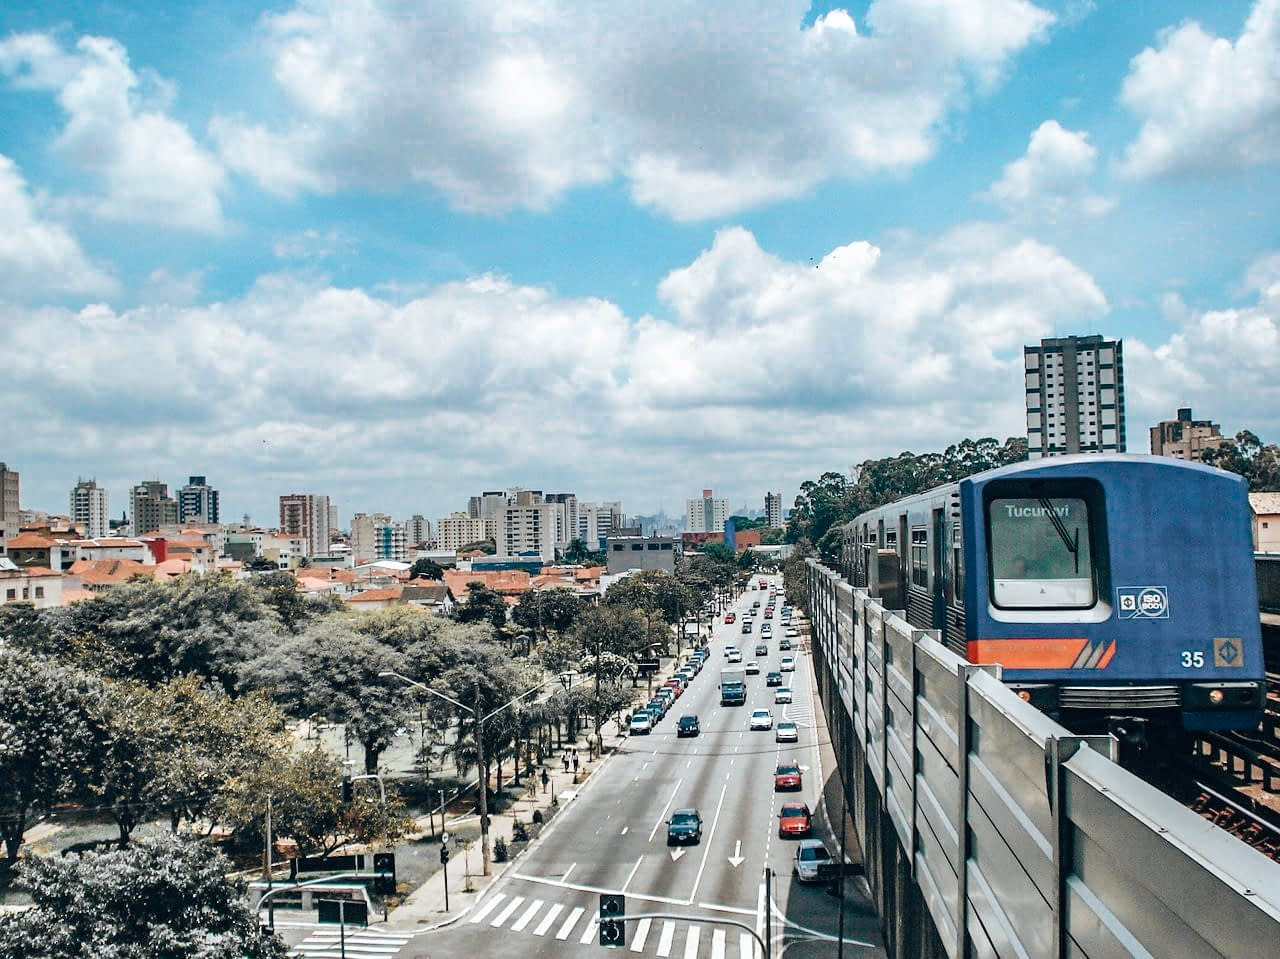 Rio Carnival Subway - Image of train entering platform above a busy highway road